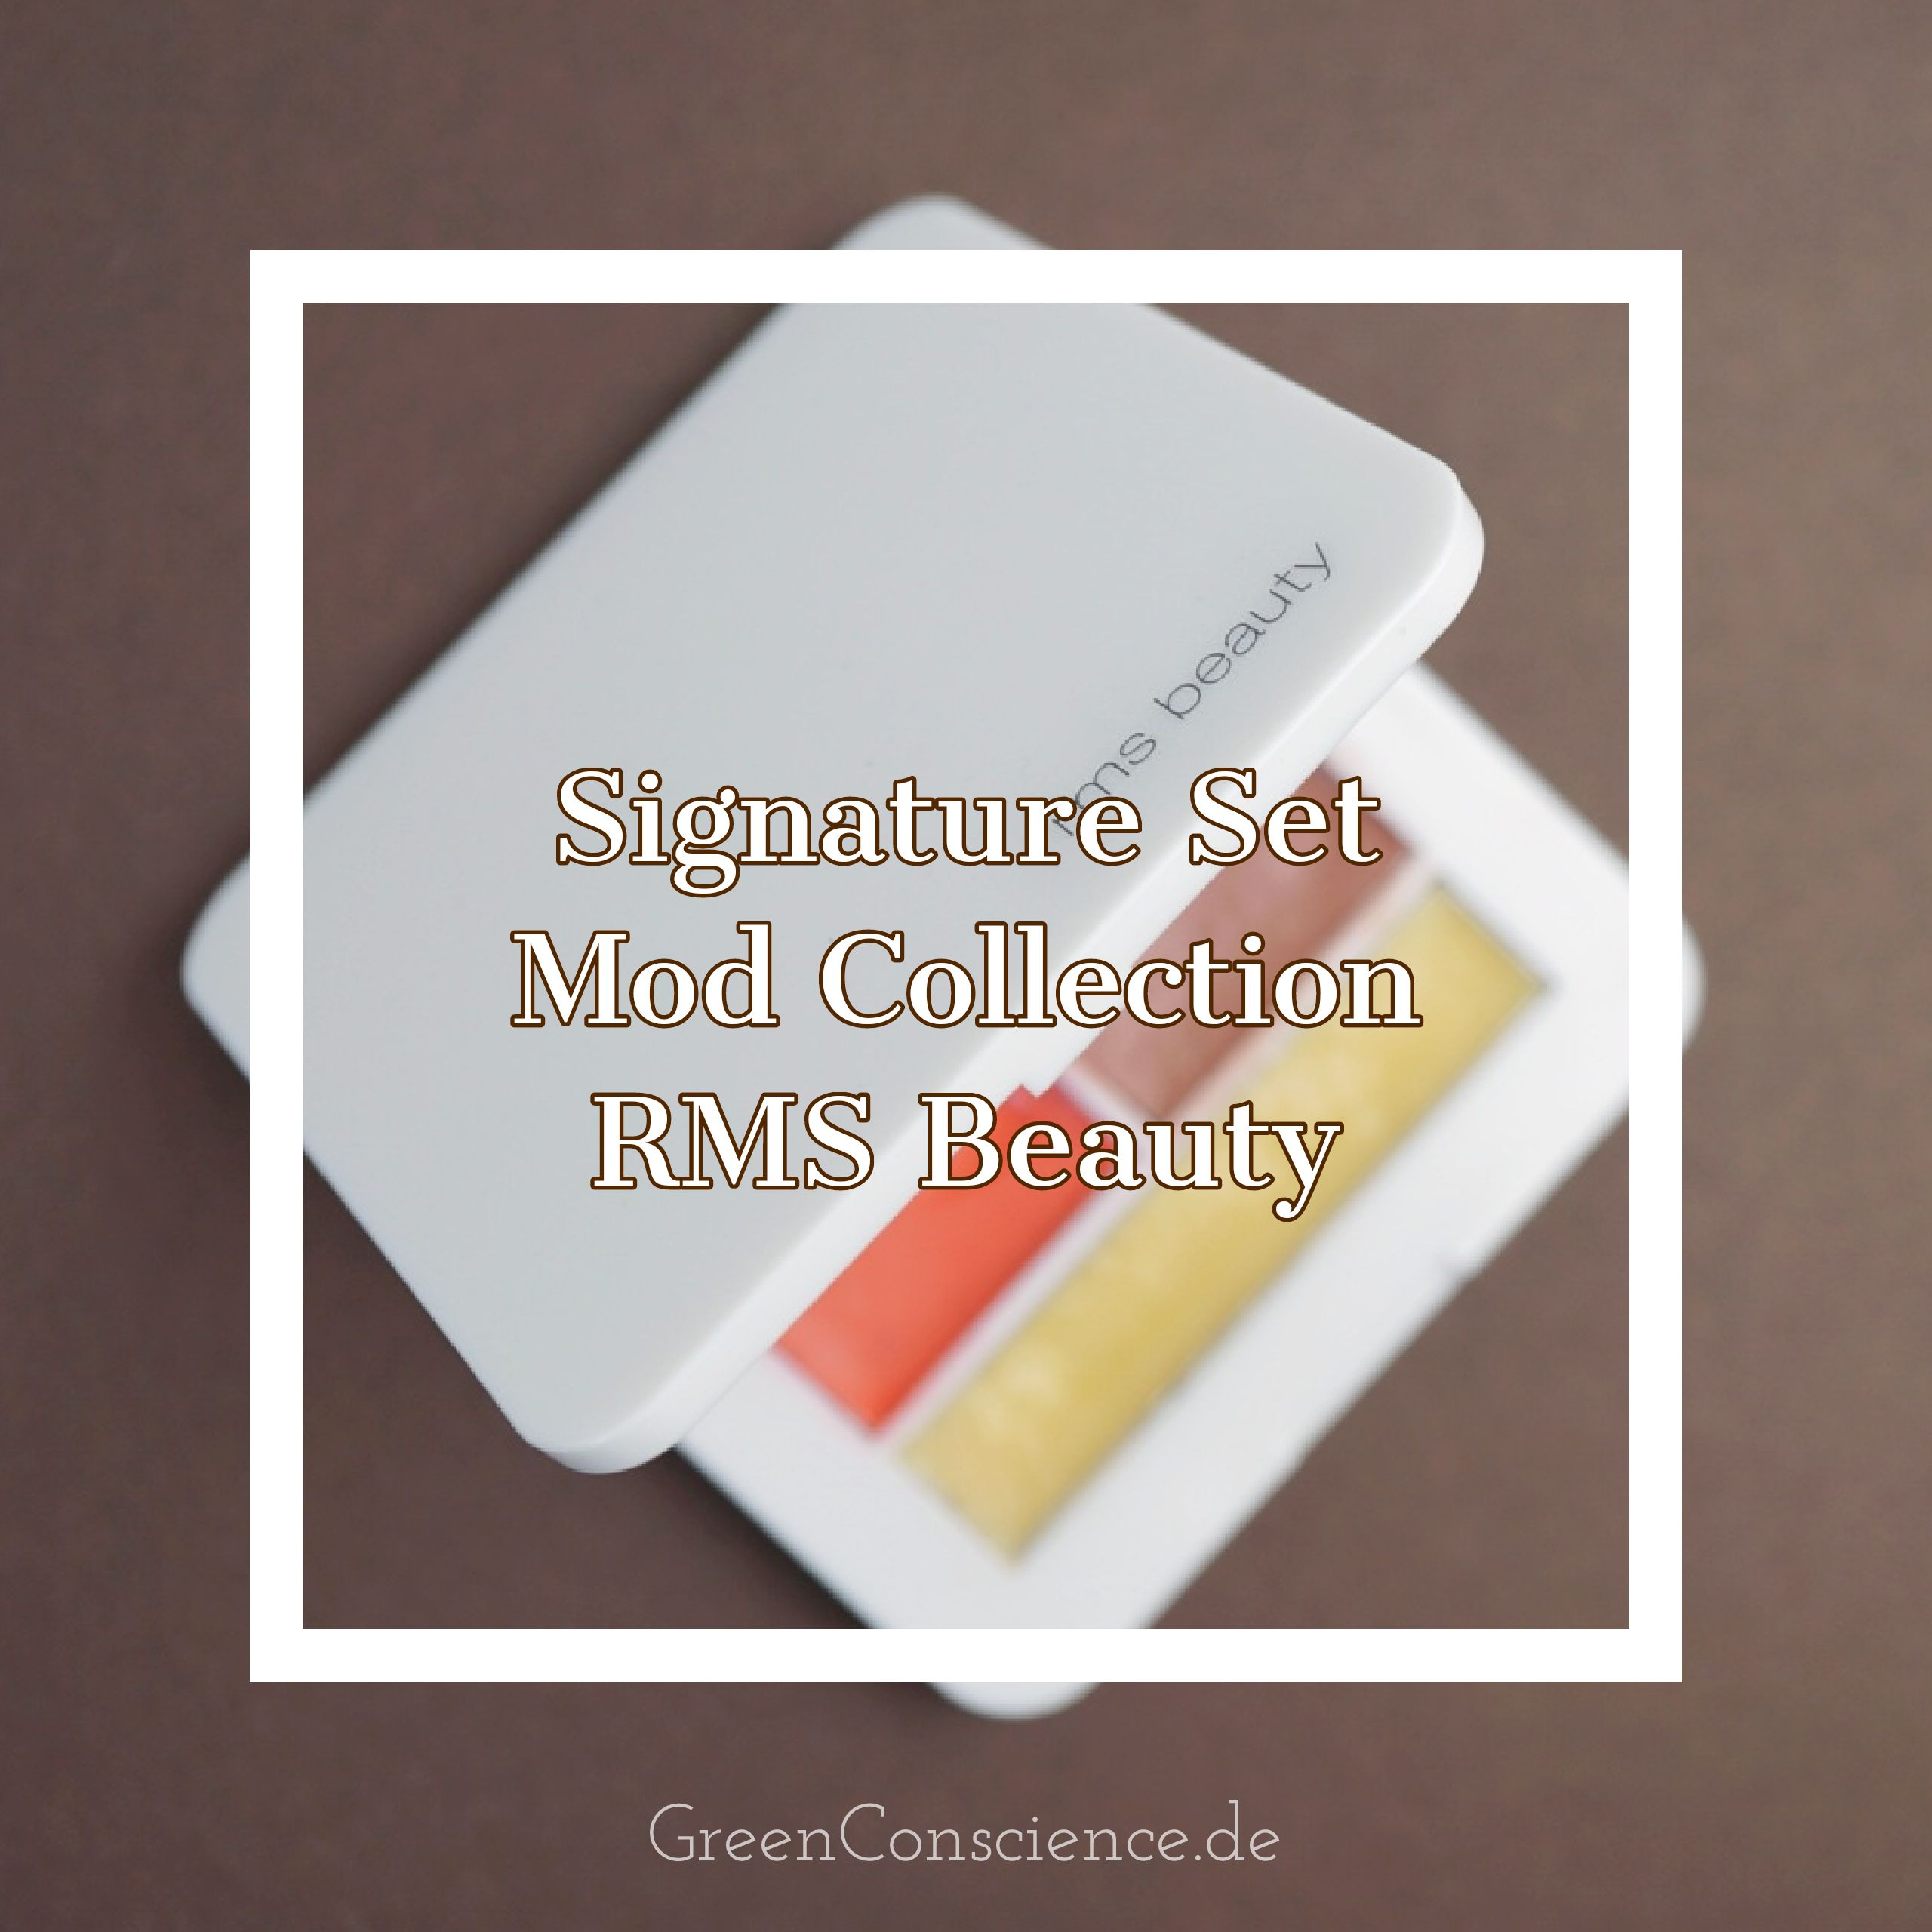 "RMS Beauty Mod Palette Review: mehr Infos auf meinem Blog GreenConscience.de Die RMS Beauty Signature Make-Up Palette ""Mod Collection"" enthält ""Master Mixer"", ""Living Luminizer"", ""Smile lip2cheek"", ""Spell lip2cheek"" und ""Simply cocoa lip & skin balm"". #makeup #rmsbeauty #naturkosmetik #greenconscience"